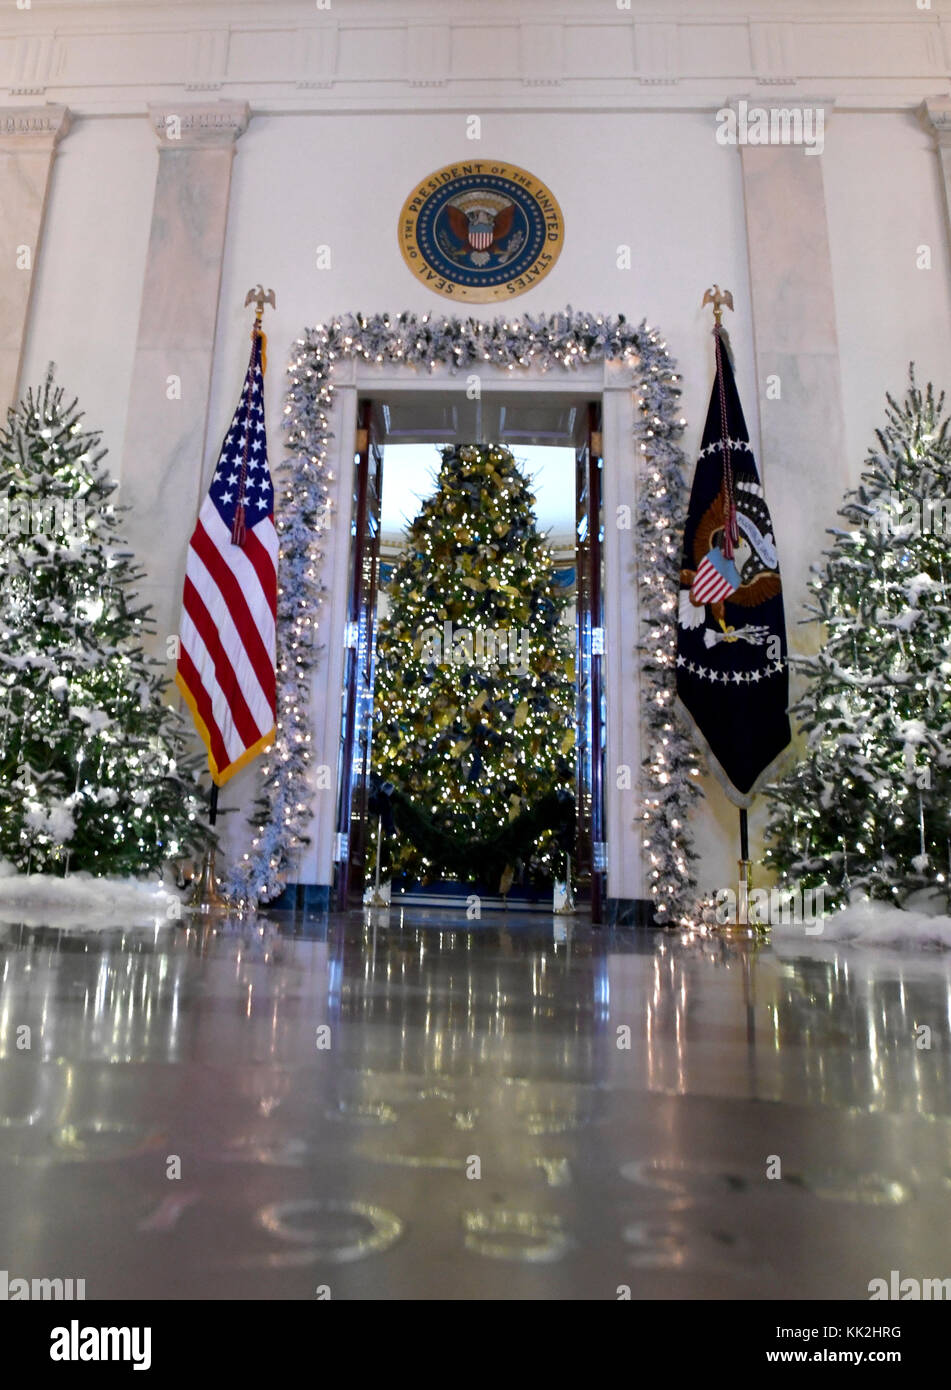 the 2017 white house christmas decorations with the theme time honored traditions which were personally selected by first lady melania trump